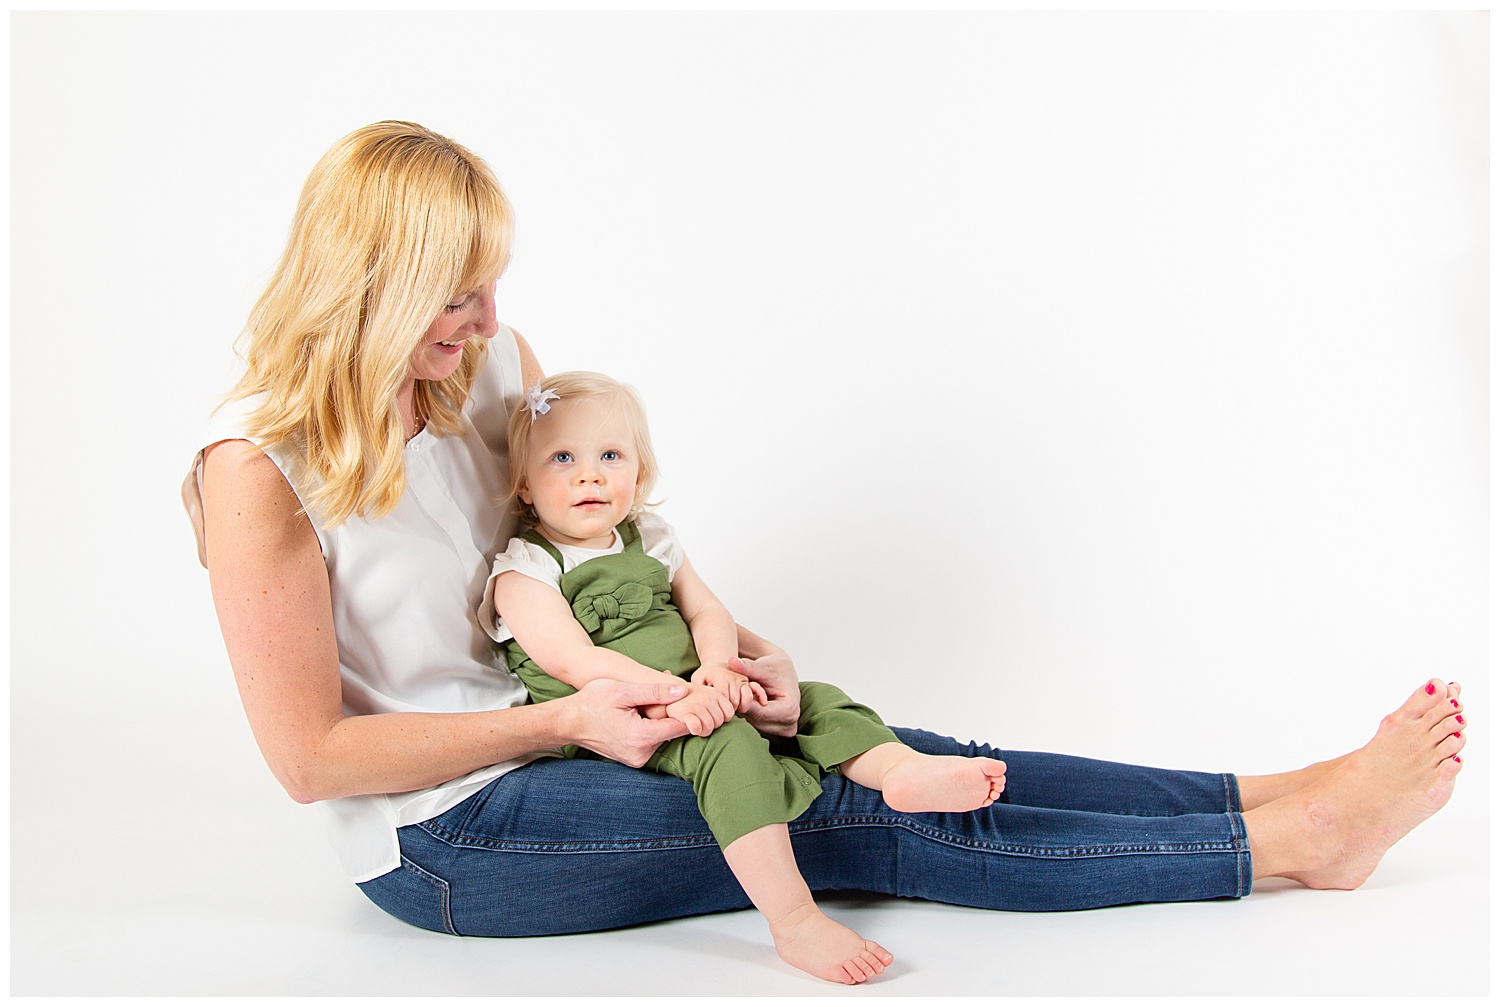 emily-belson-photography-family-session-07.jpg